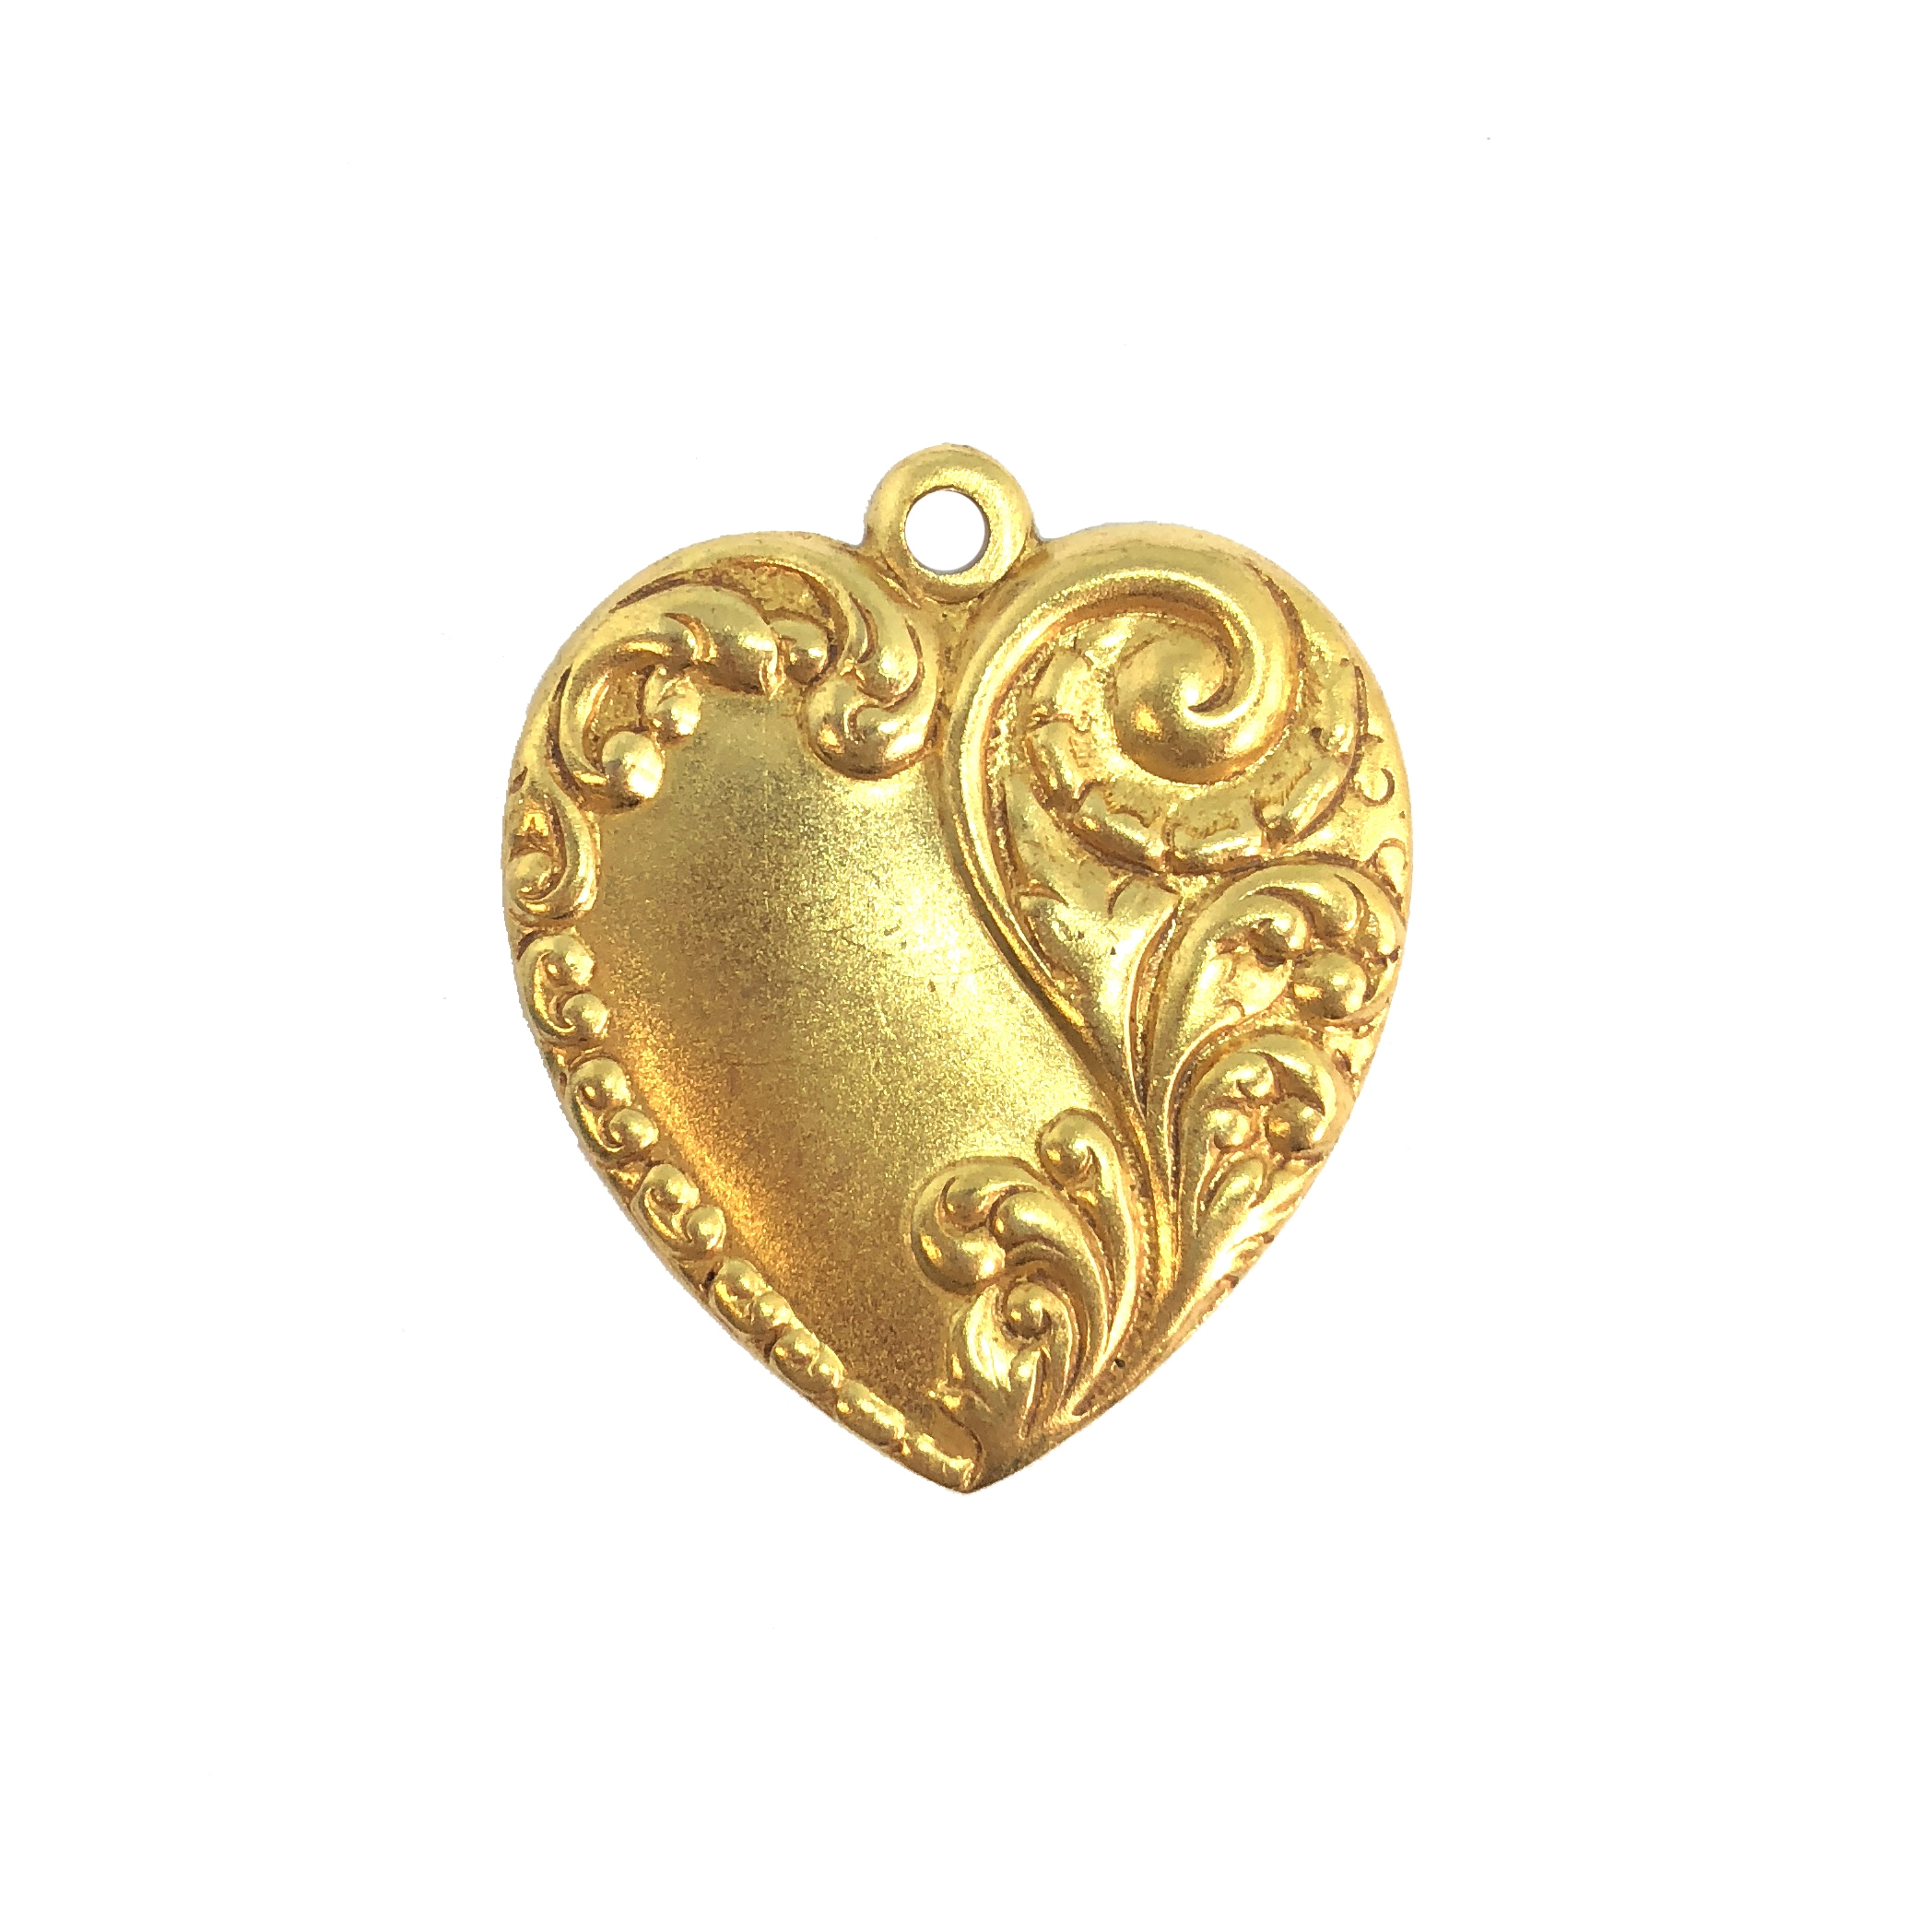 floral charm, classic gold plated, hearts, brass stamping, charm, pendant, floral design, 28x24mm, heart charm, us made, gold, classic gold, brass, gold plated, floral, nickel free, B'sue Boutiques, vintage supplies, leafy heart, 08473, leaf design